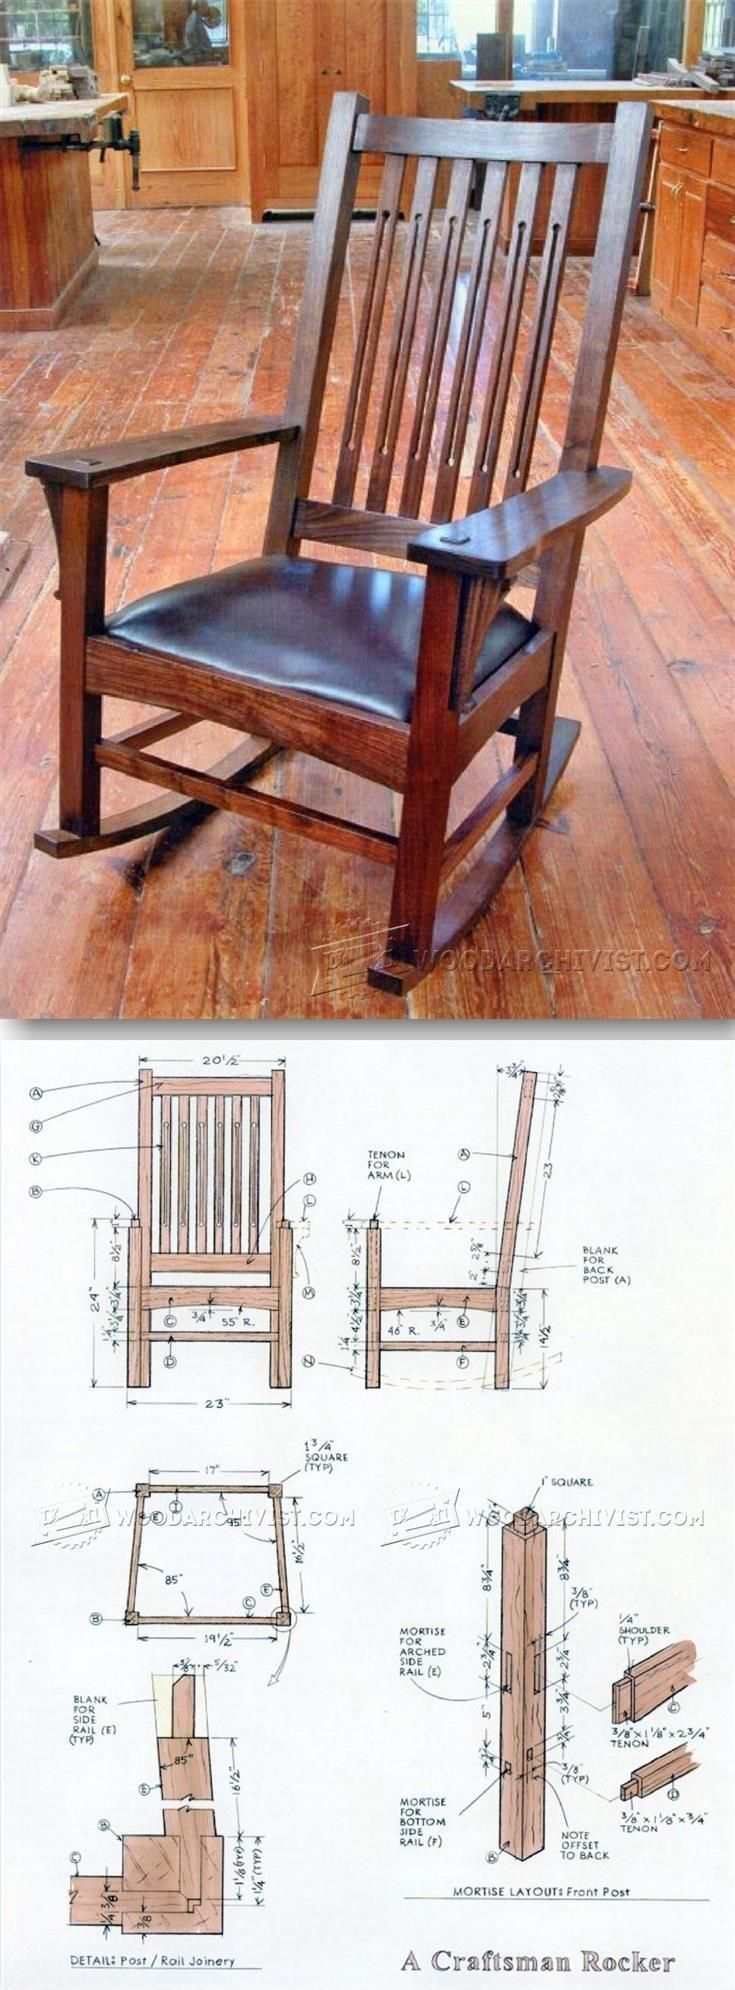 5 prodigious useful ideas woodworking for beginners link on useful diy wood project ideas beginner woodworking plans id=89722